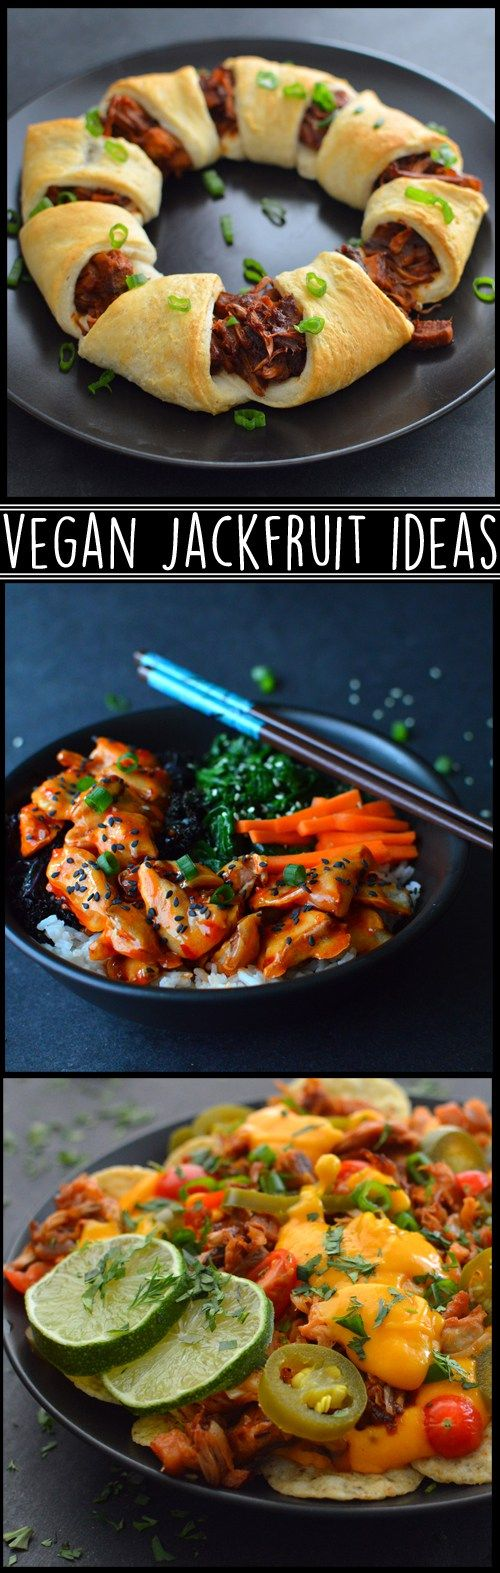 3 Vegan Jackfruit Dinner Recipes - Vegan Pork Nachos, Vegan BBQ Crescent Roll Ring, Vegan Breaded Jackfruit Buddha Bowl - Rich Bitch Cooking Blog